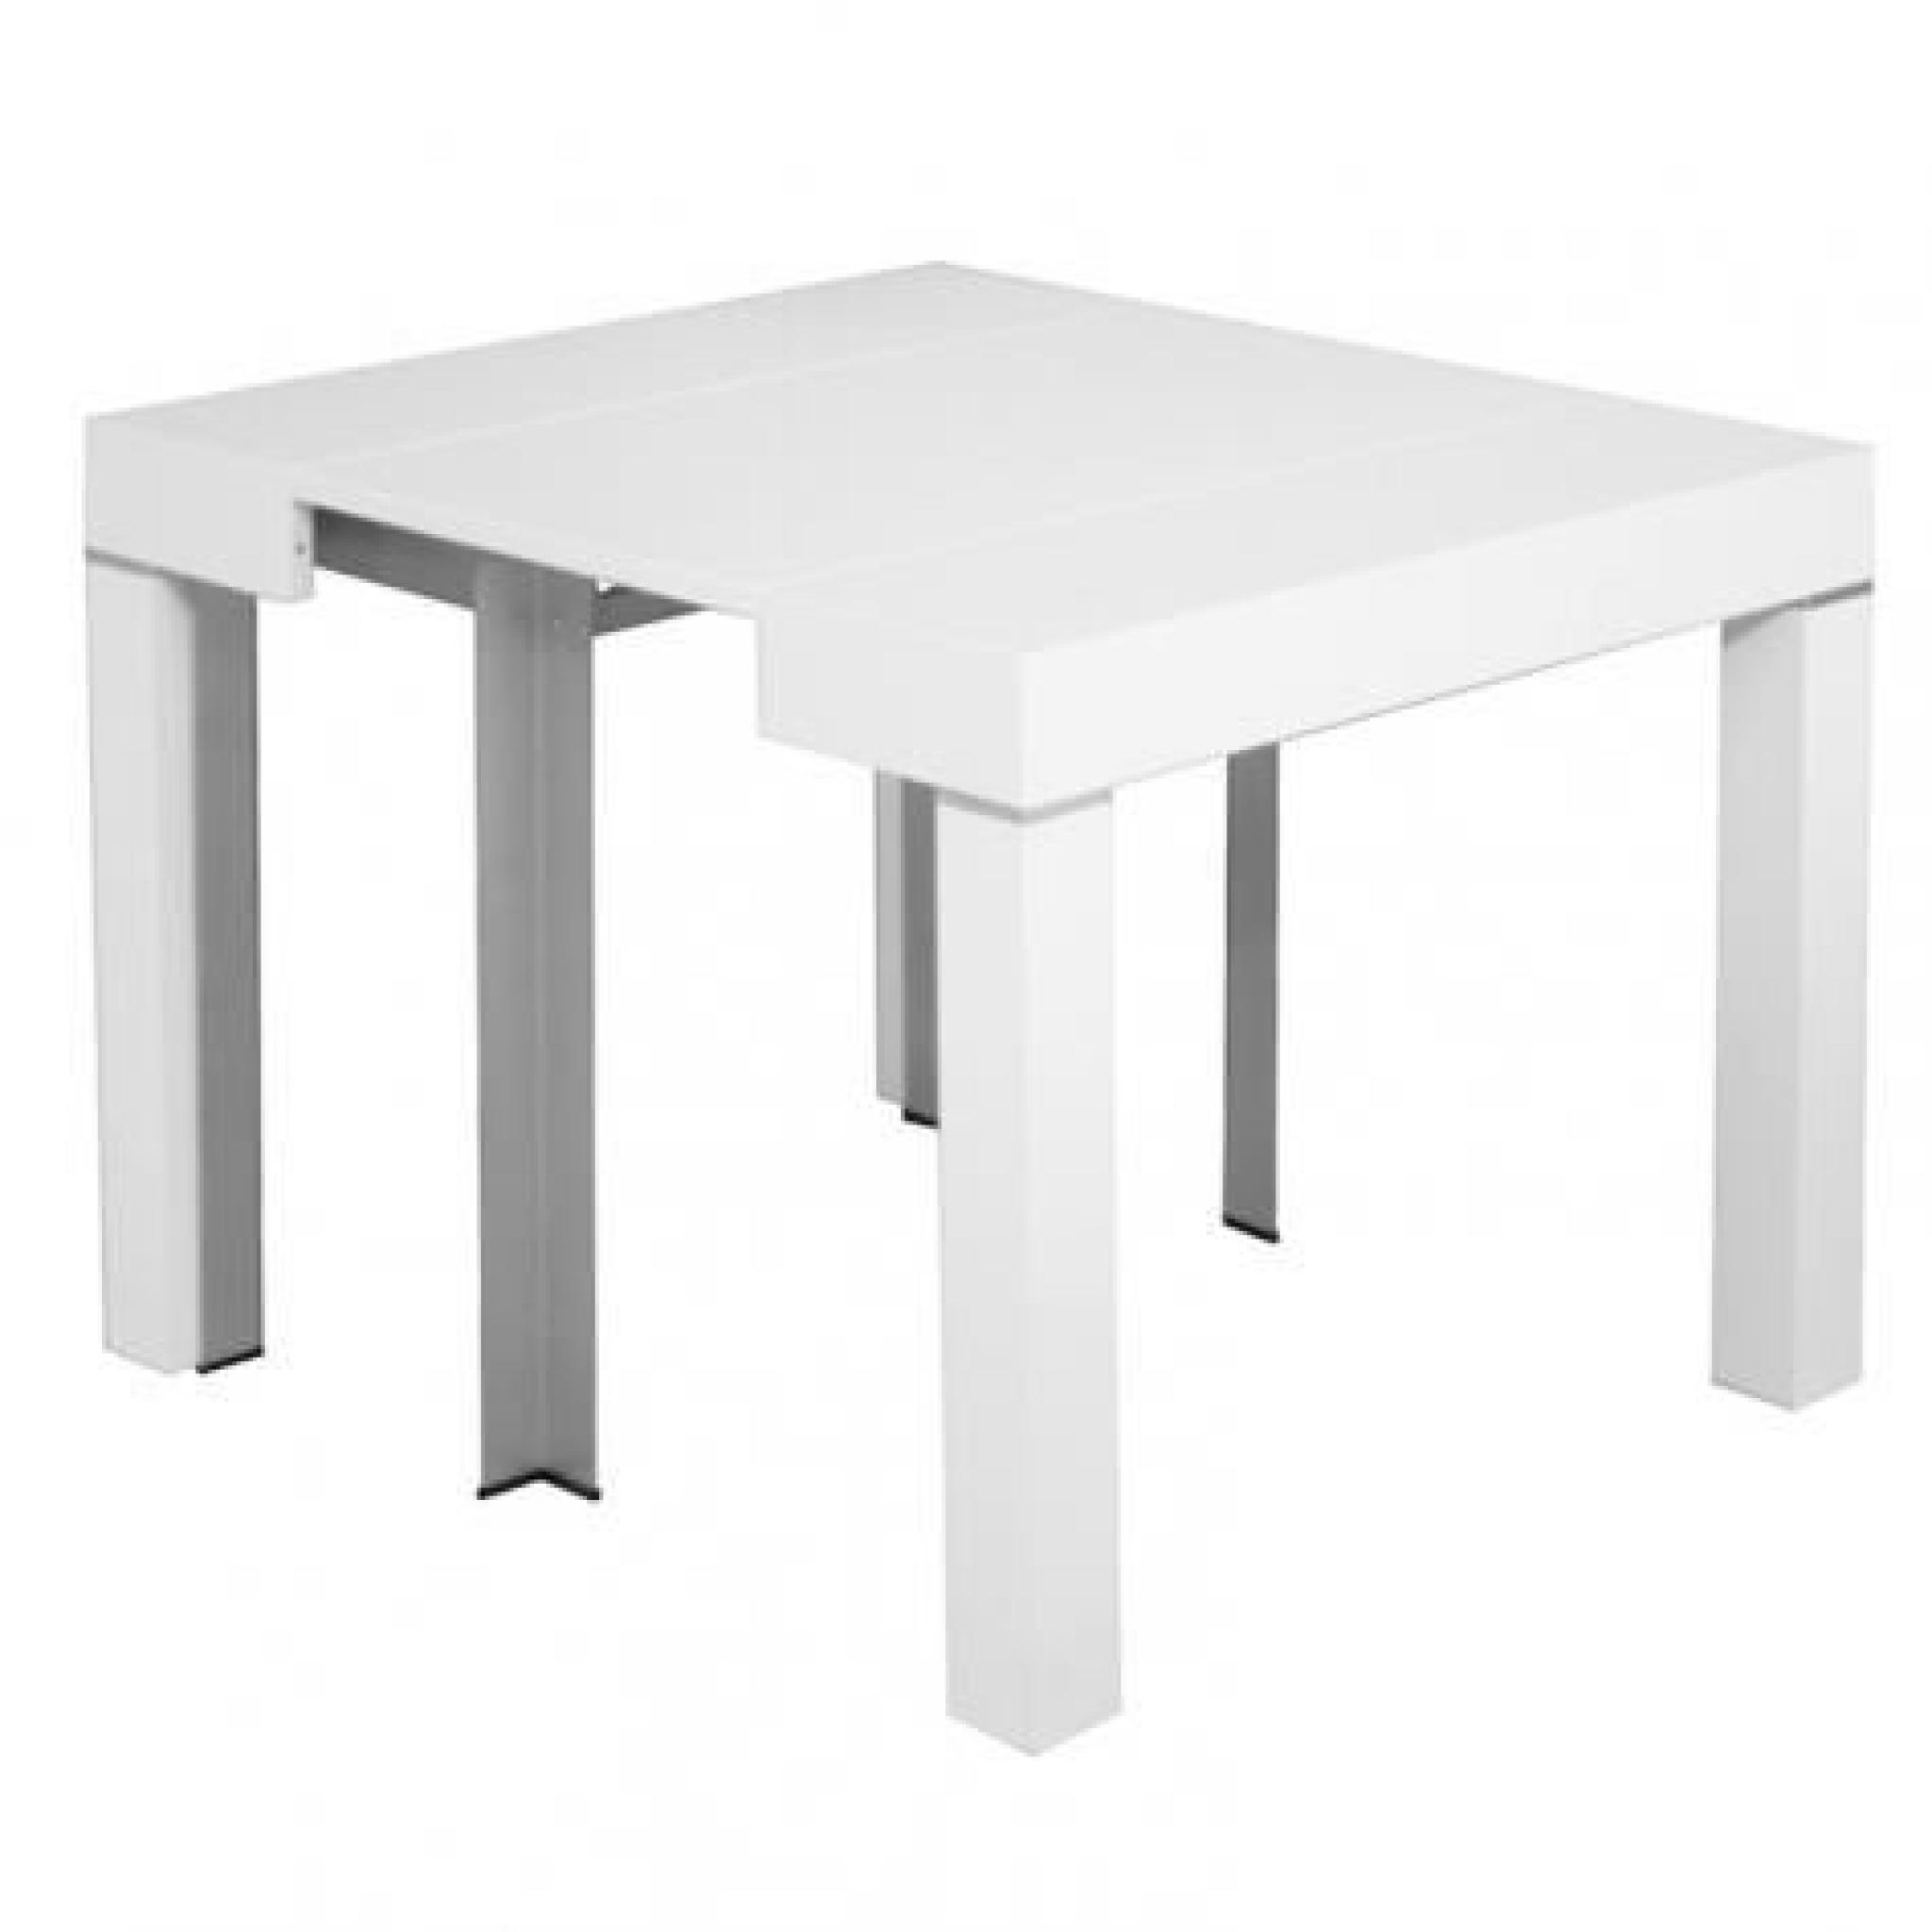 Table laquee blanche extensible 28 images table for Table console extensible